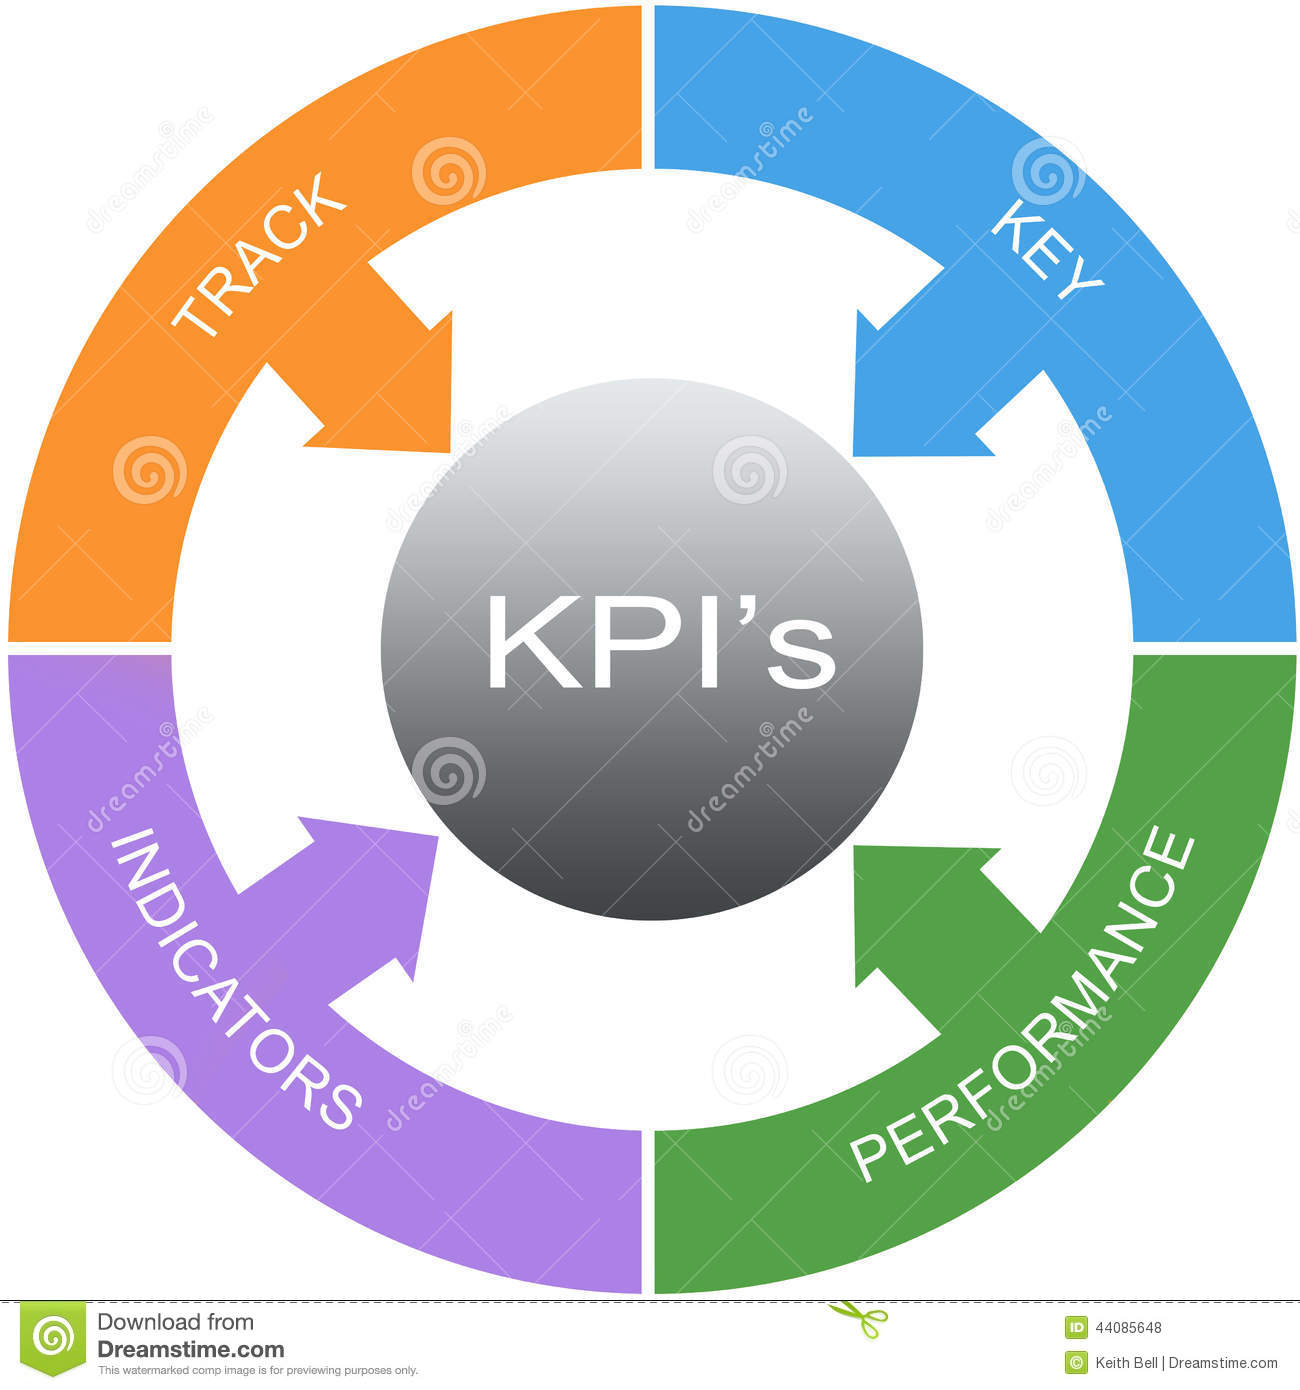 KPIs in 'Investment'